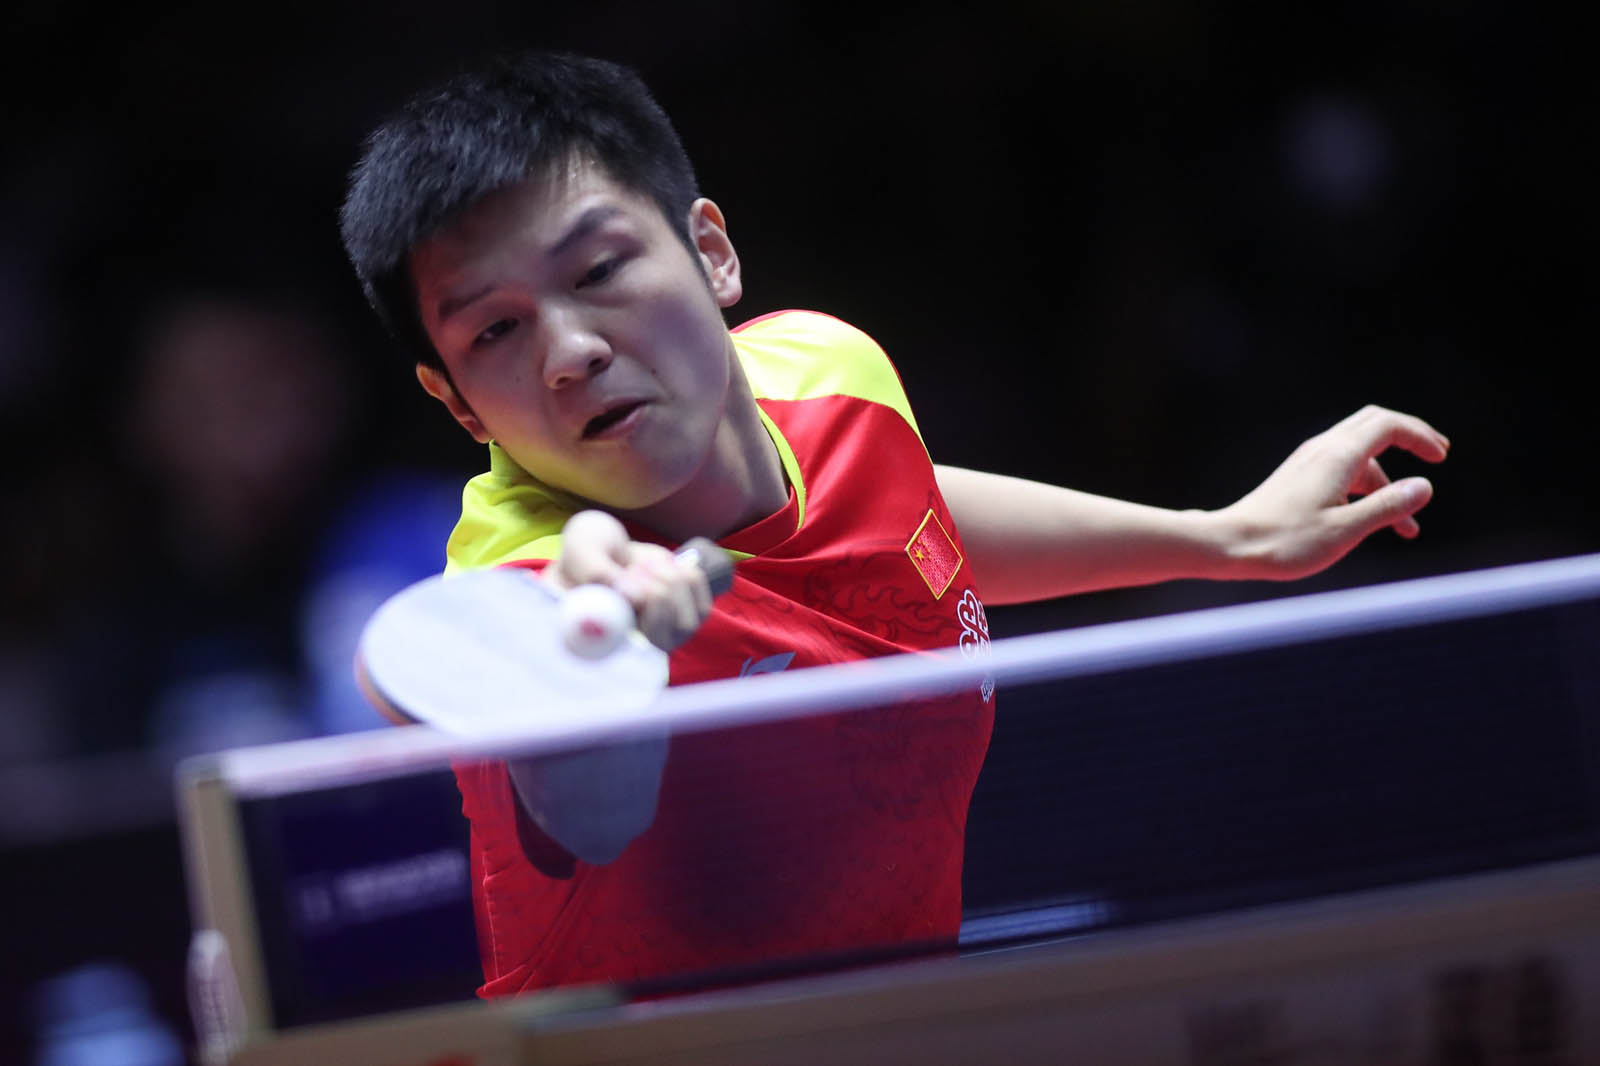 Fan Zhendong - crédit photo ITTF